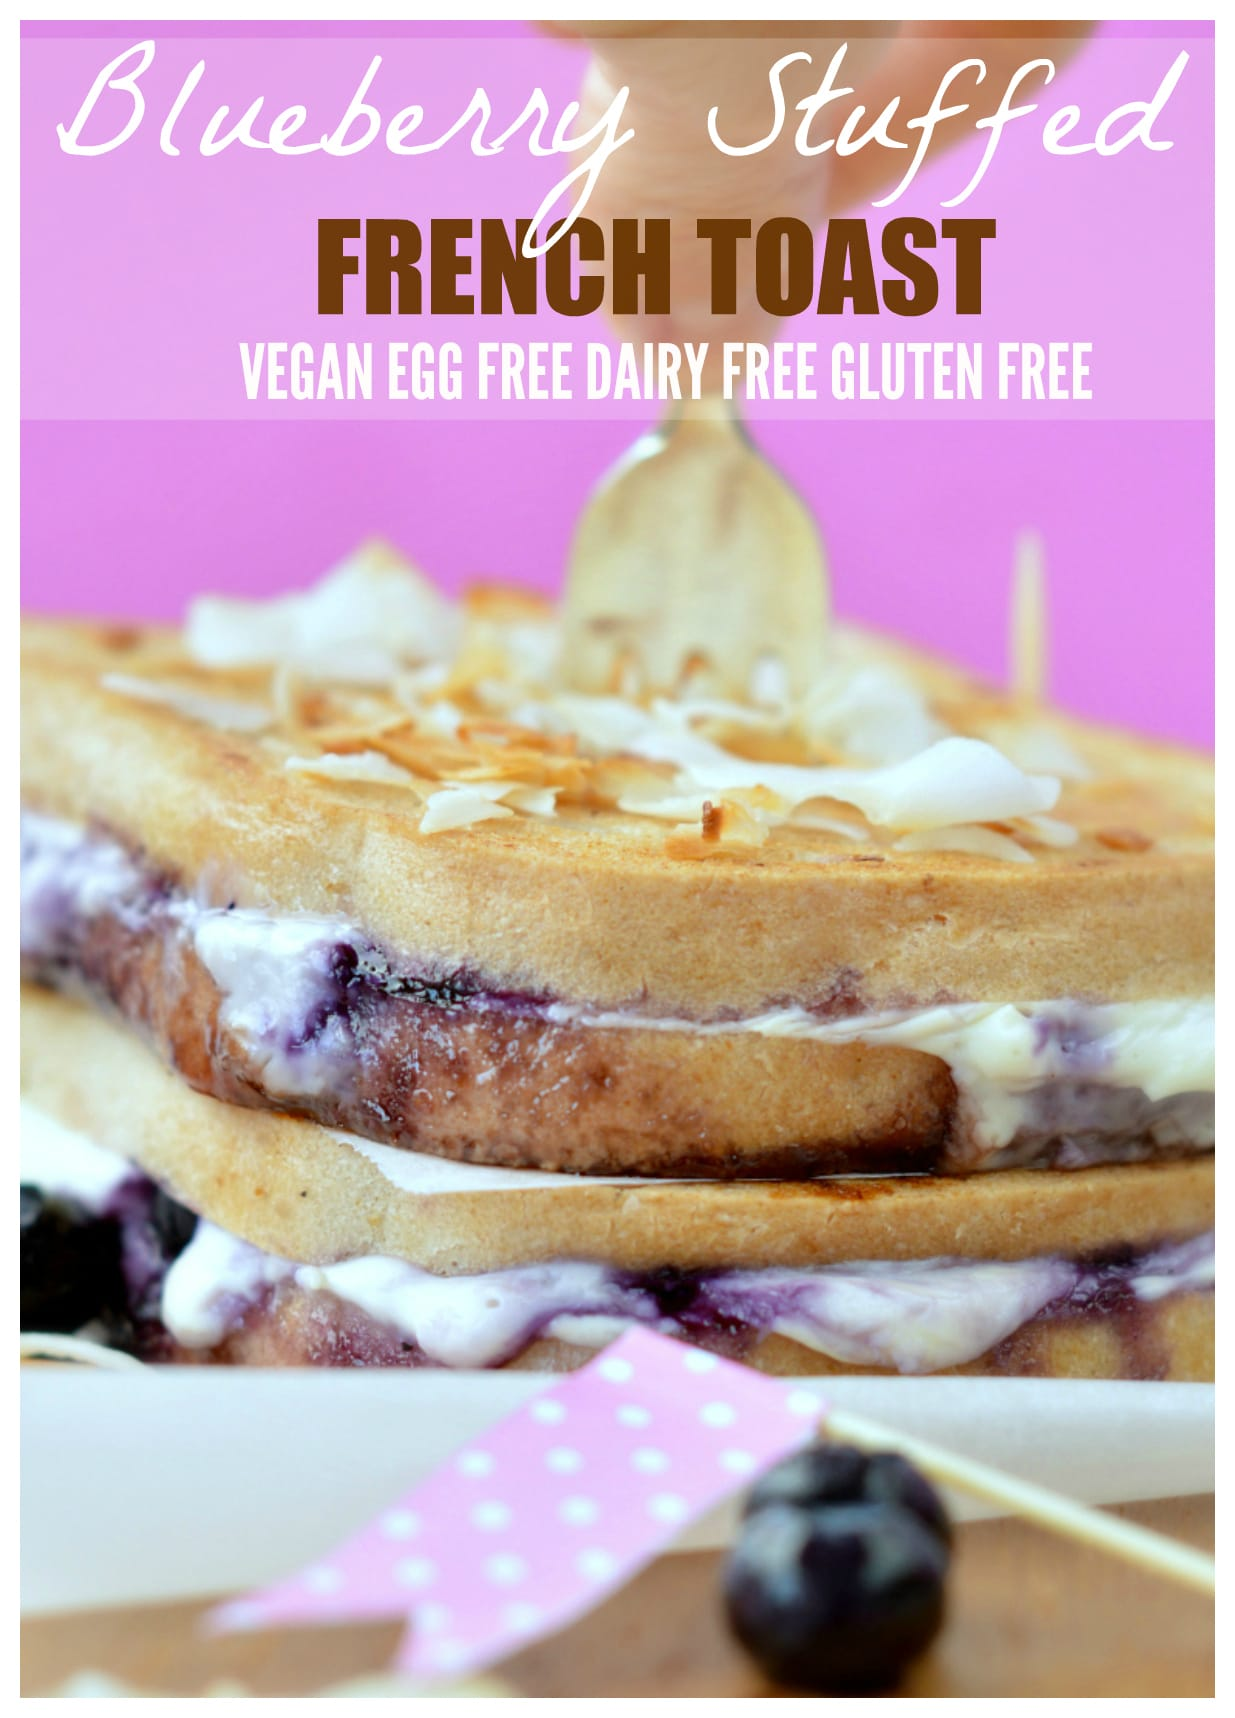 Blueberry Stuffed French Toast_vegan breakfast